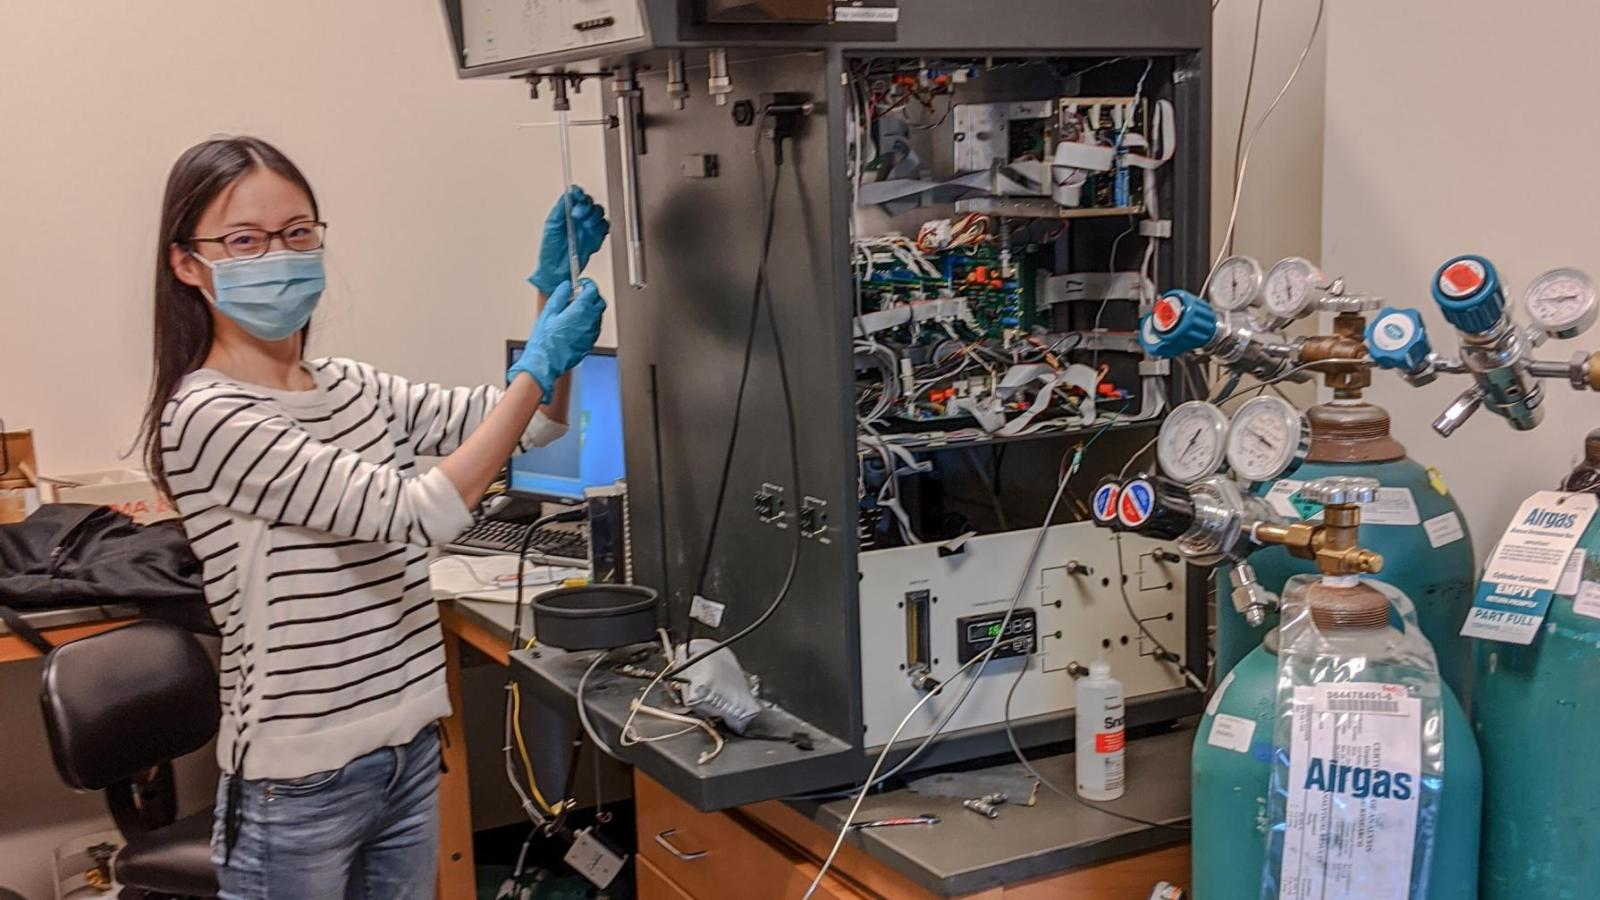 Xinpei Zhou wearing PPE while working in the Medlin Lab